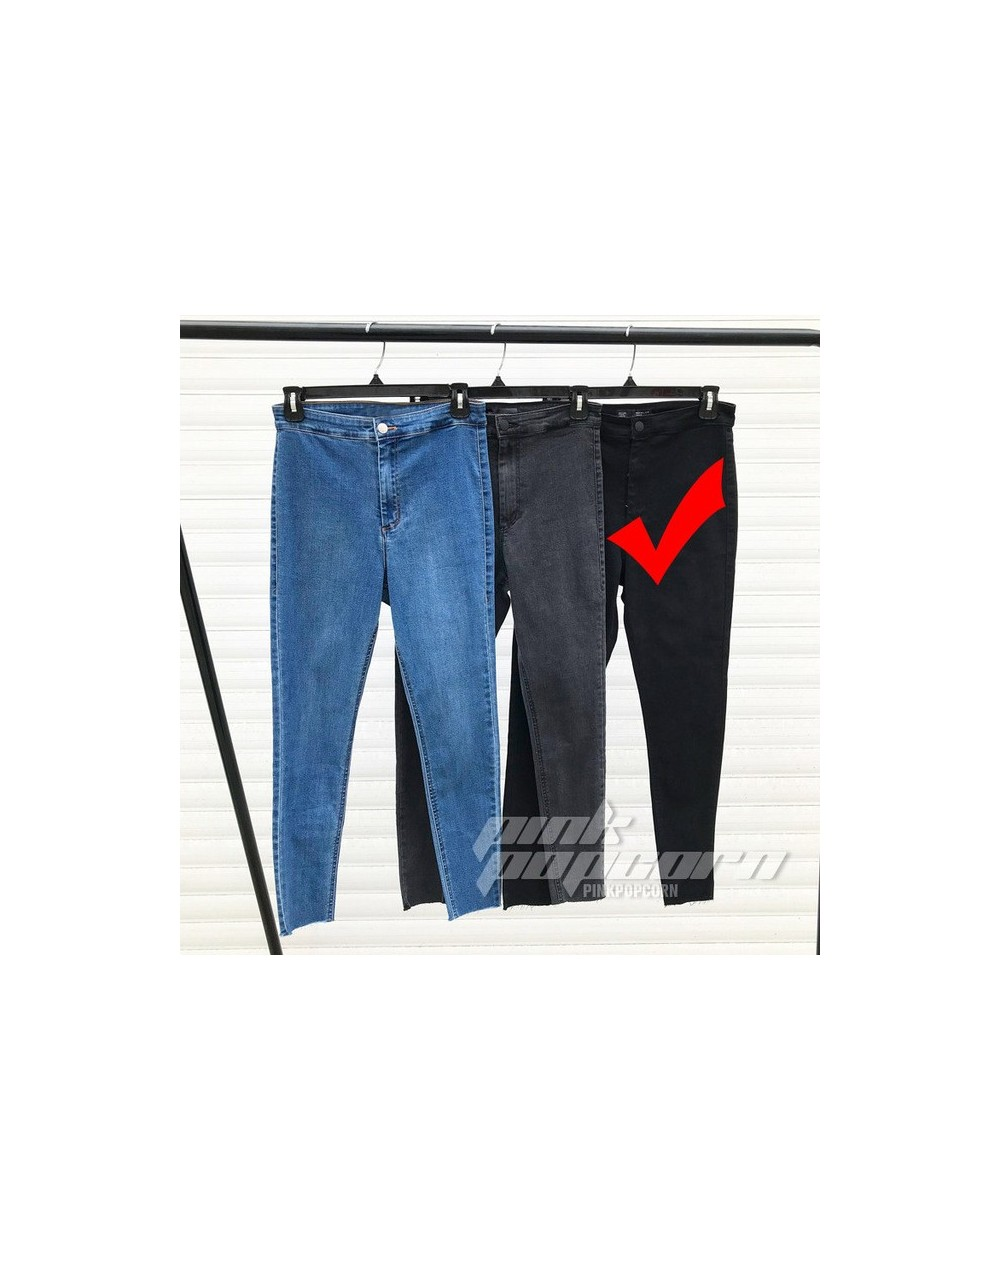 Jeans For Women Stretch Black Jeans Woman Pants Skinny Women Jeans With High Waist Denim Blue Ladies Push Up Basic Jeans - C...